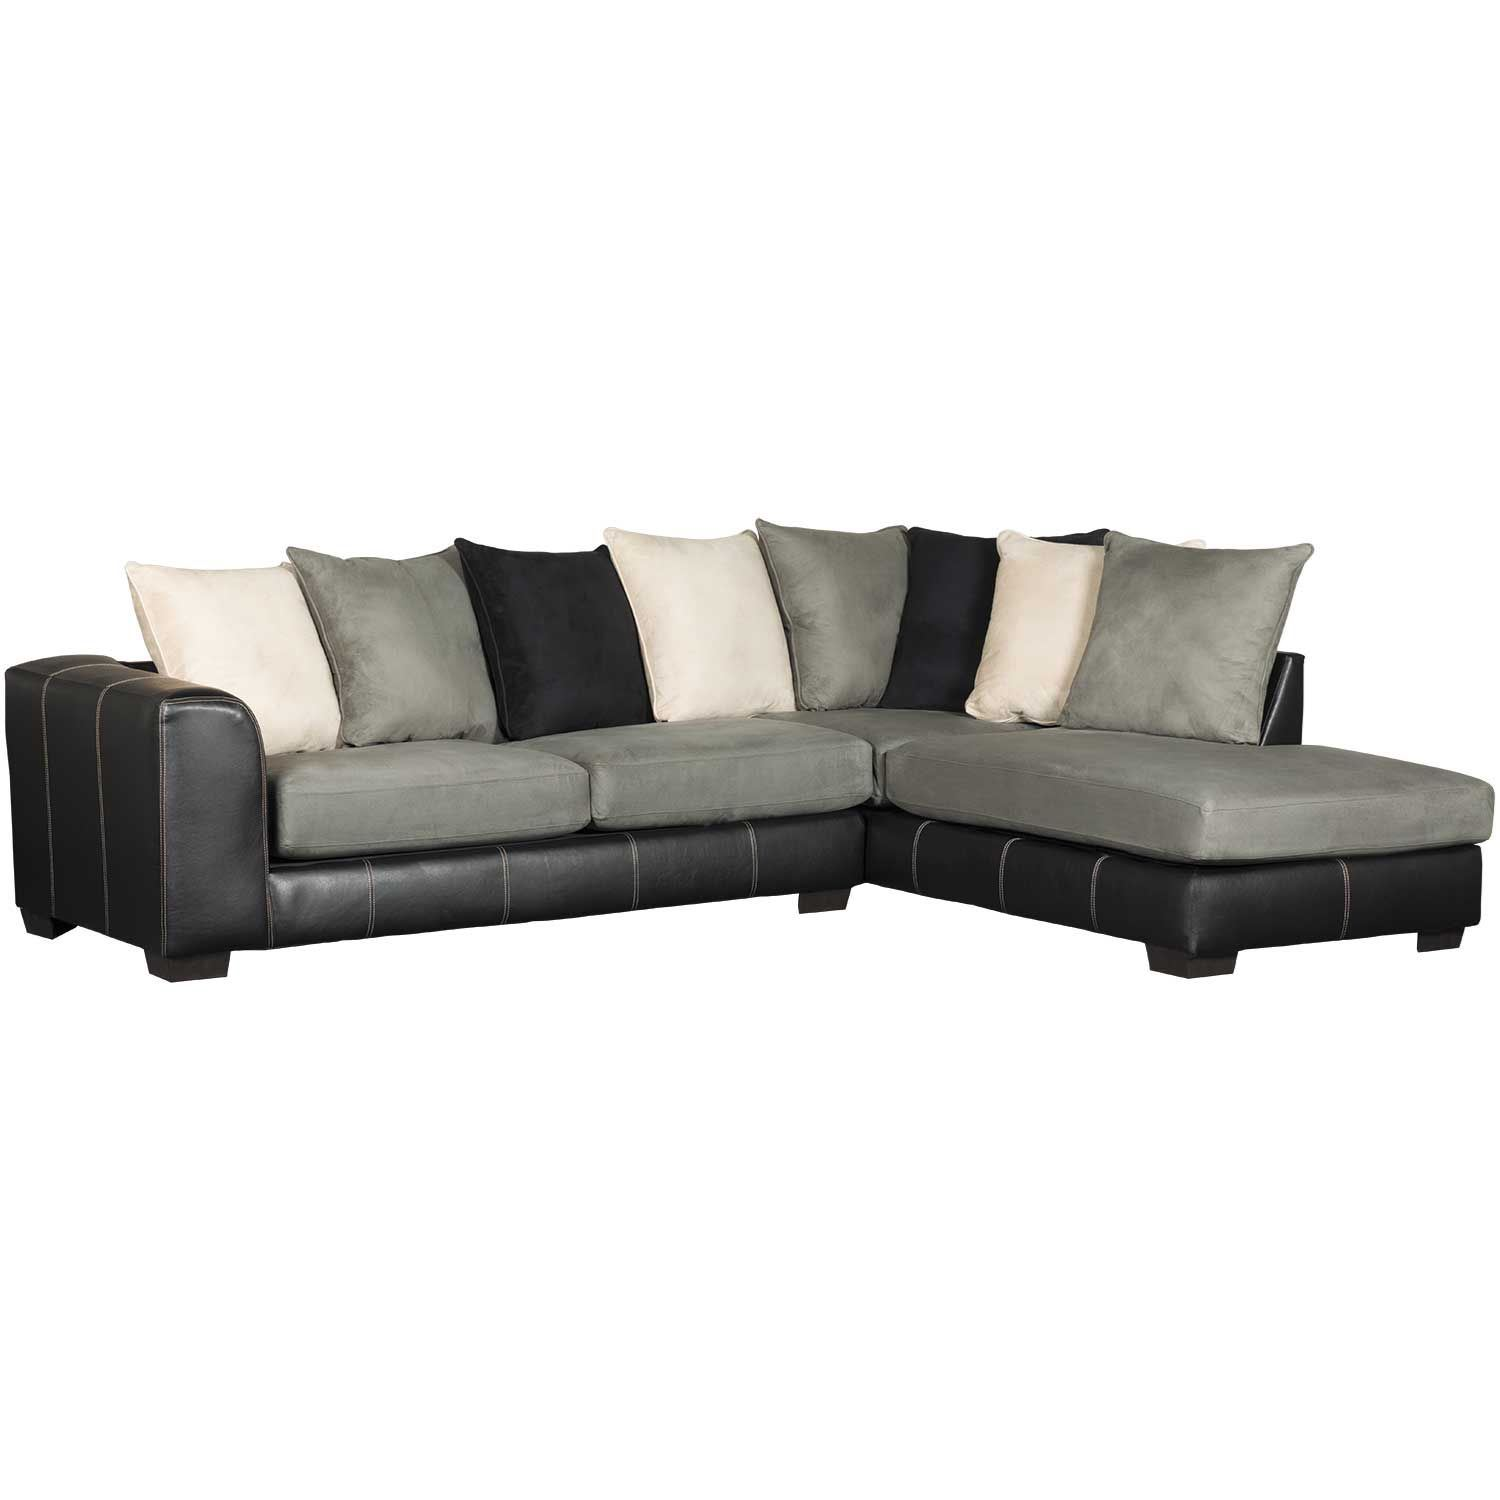 Idol 2pc Sectional 6351 6352 Steel